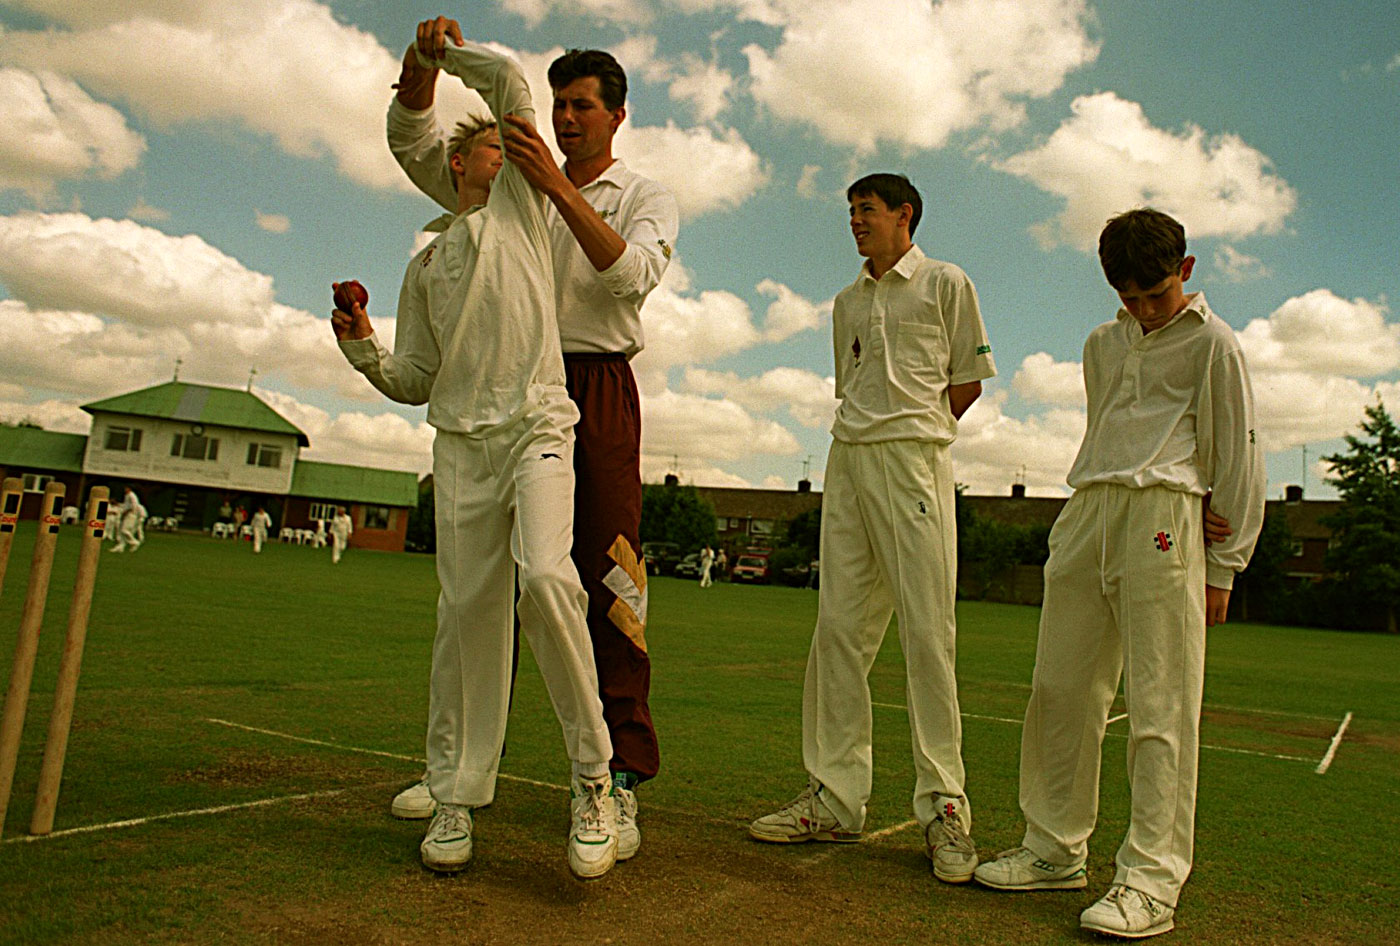 Foster coaches youngsters in Northampton, 1997